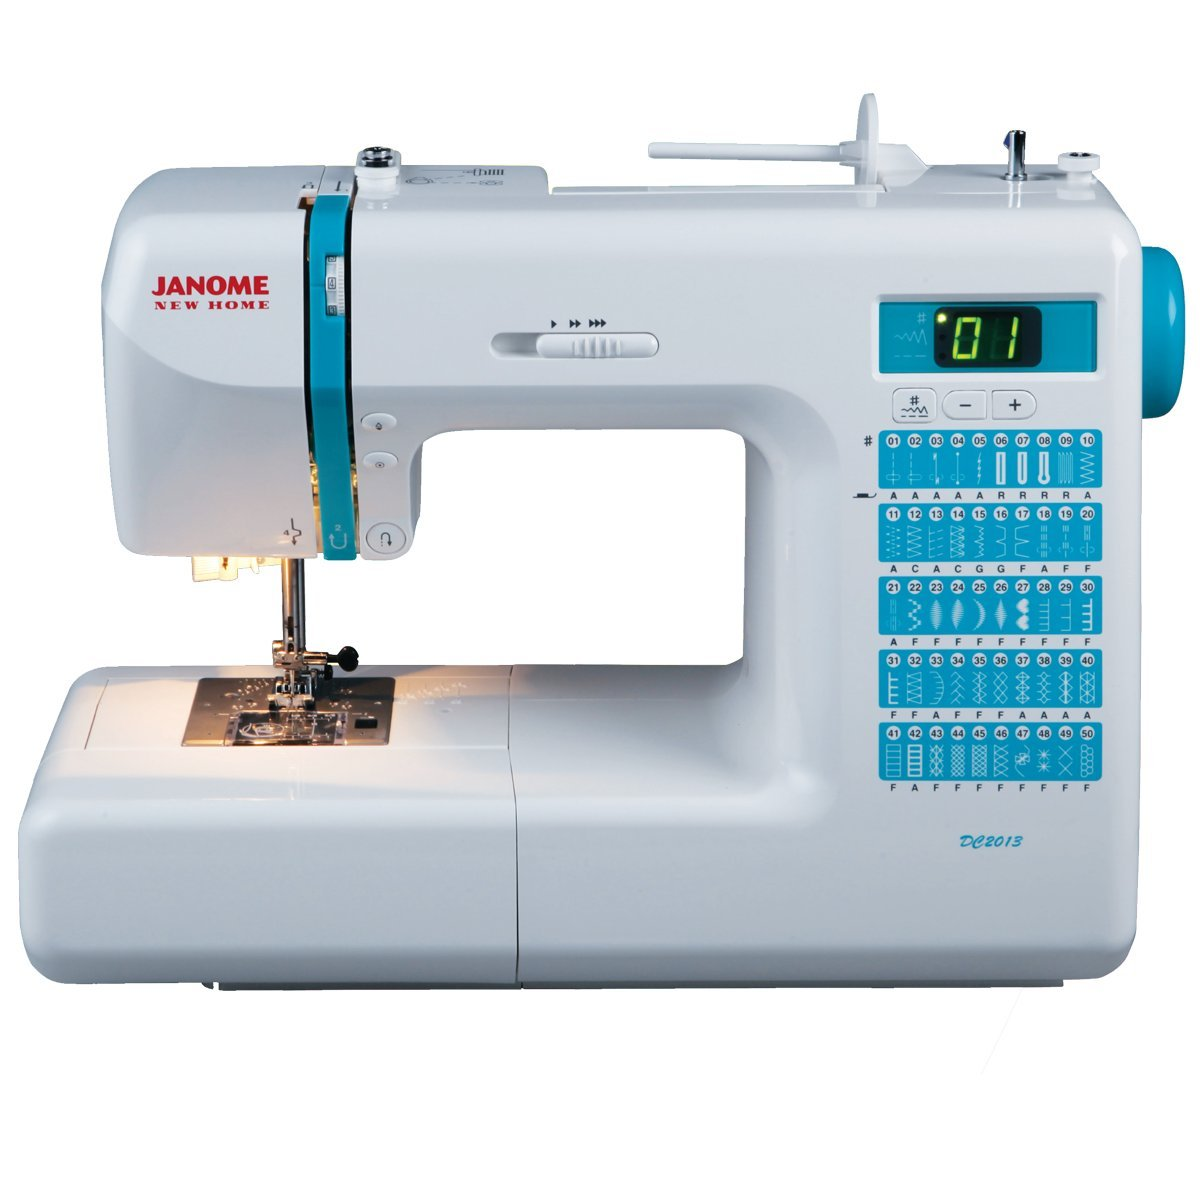 top-5-brands-that-proved-their-name-amongst-sewing-machines-10